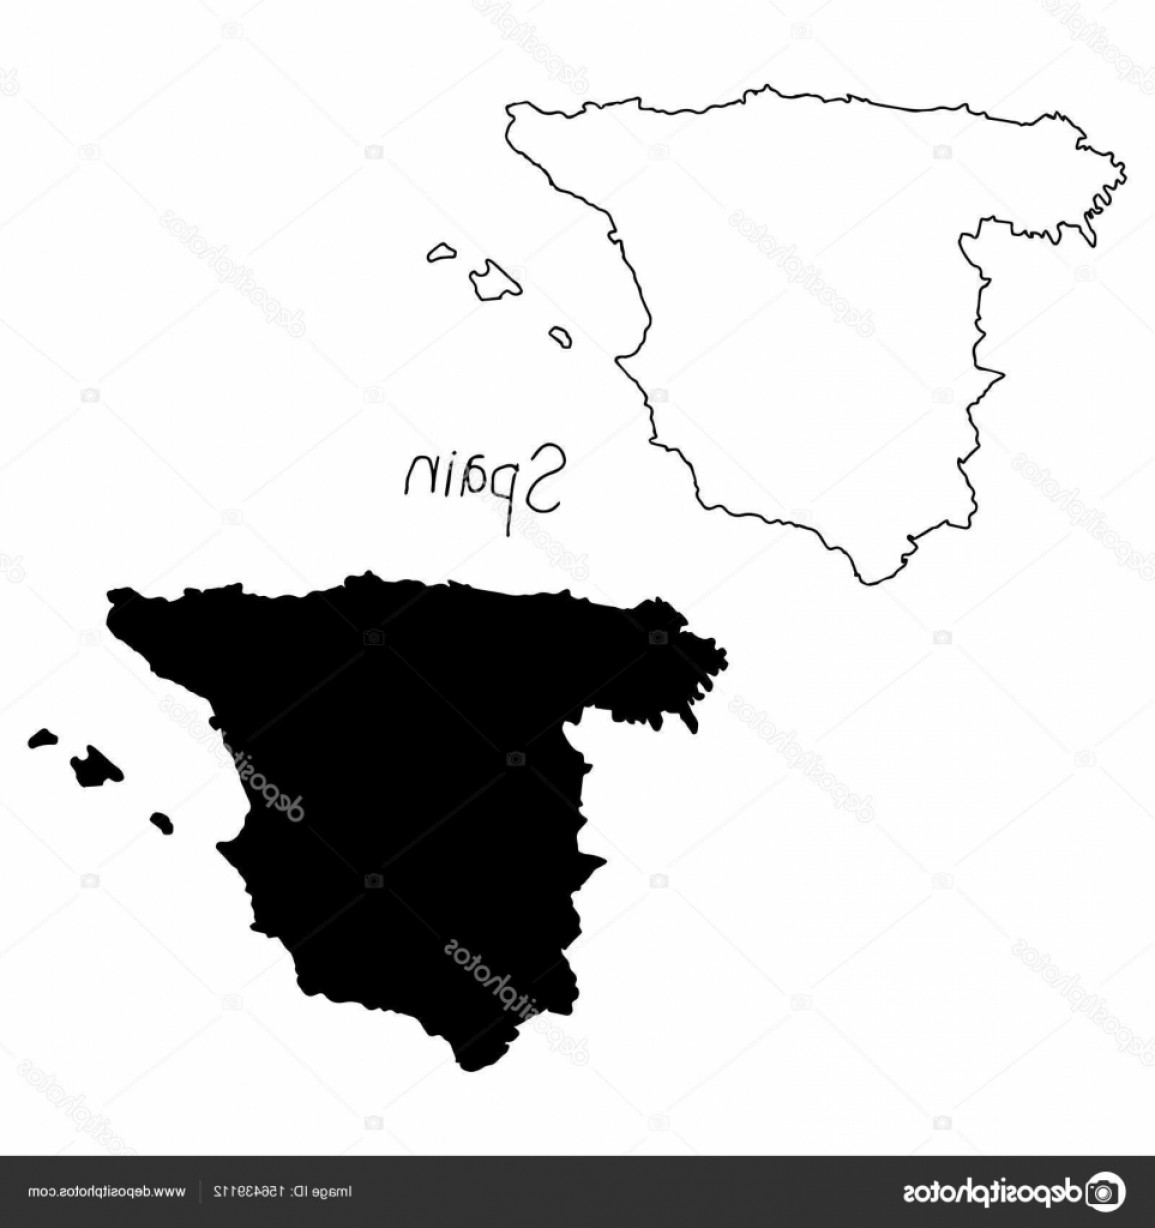 Spain Outline Vector: Stock Illustration Outline And Silhouette Map Of